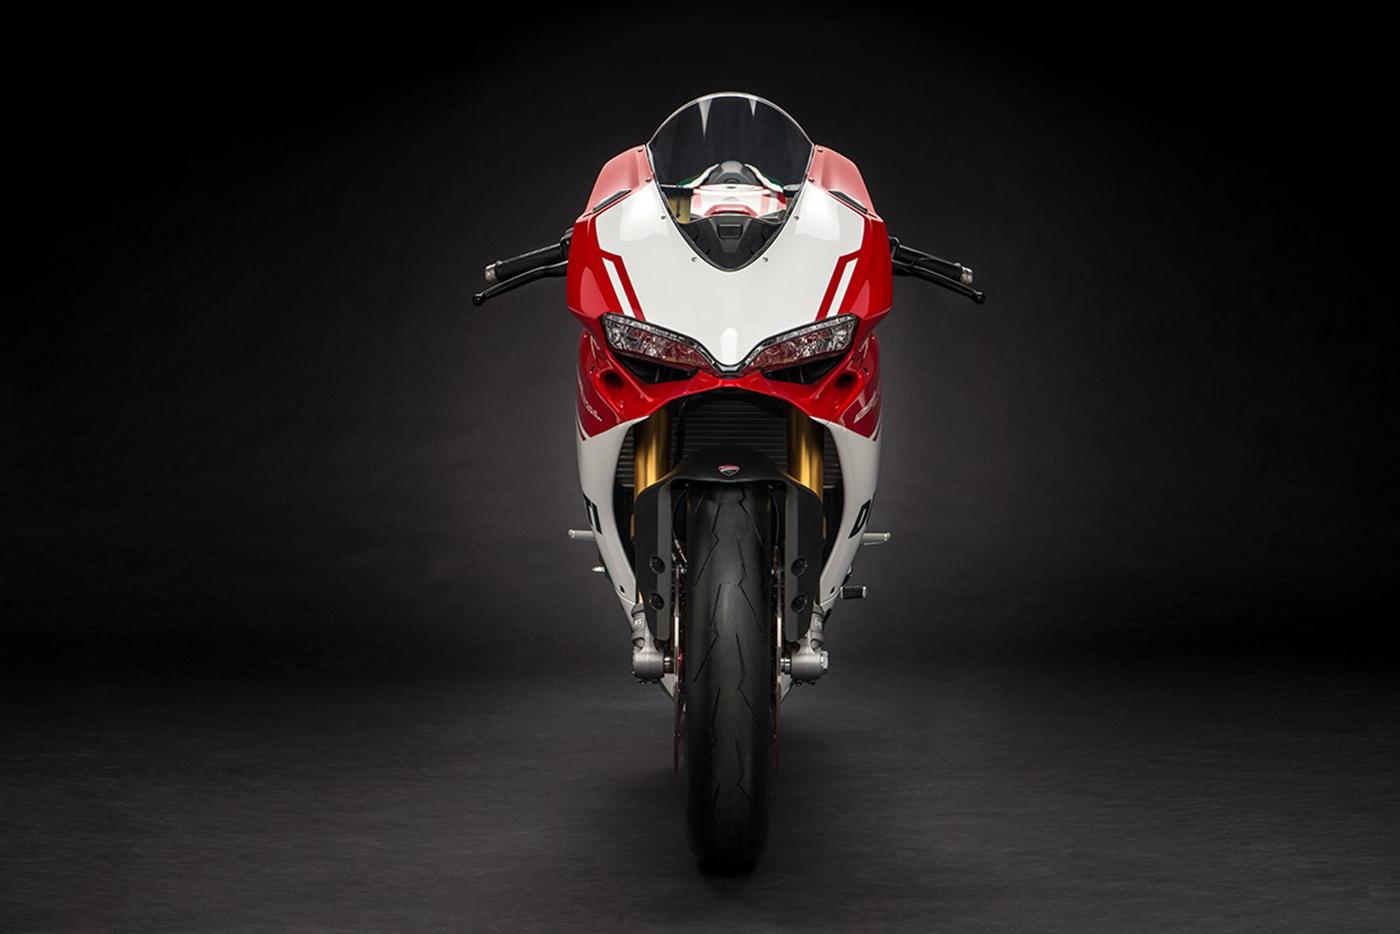 ducati-1299-panigale-r-final-edition-19.jpg